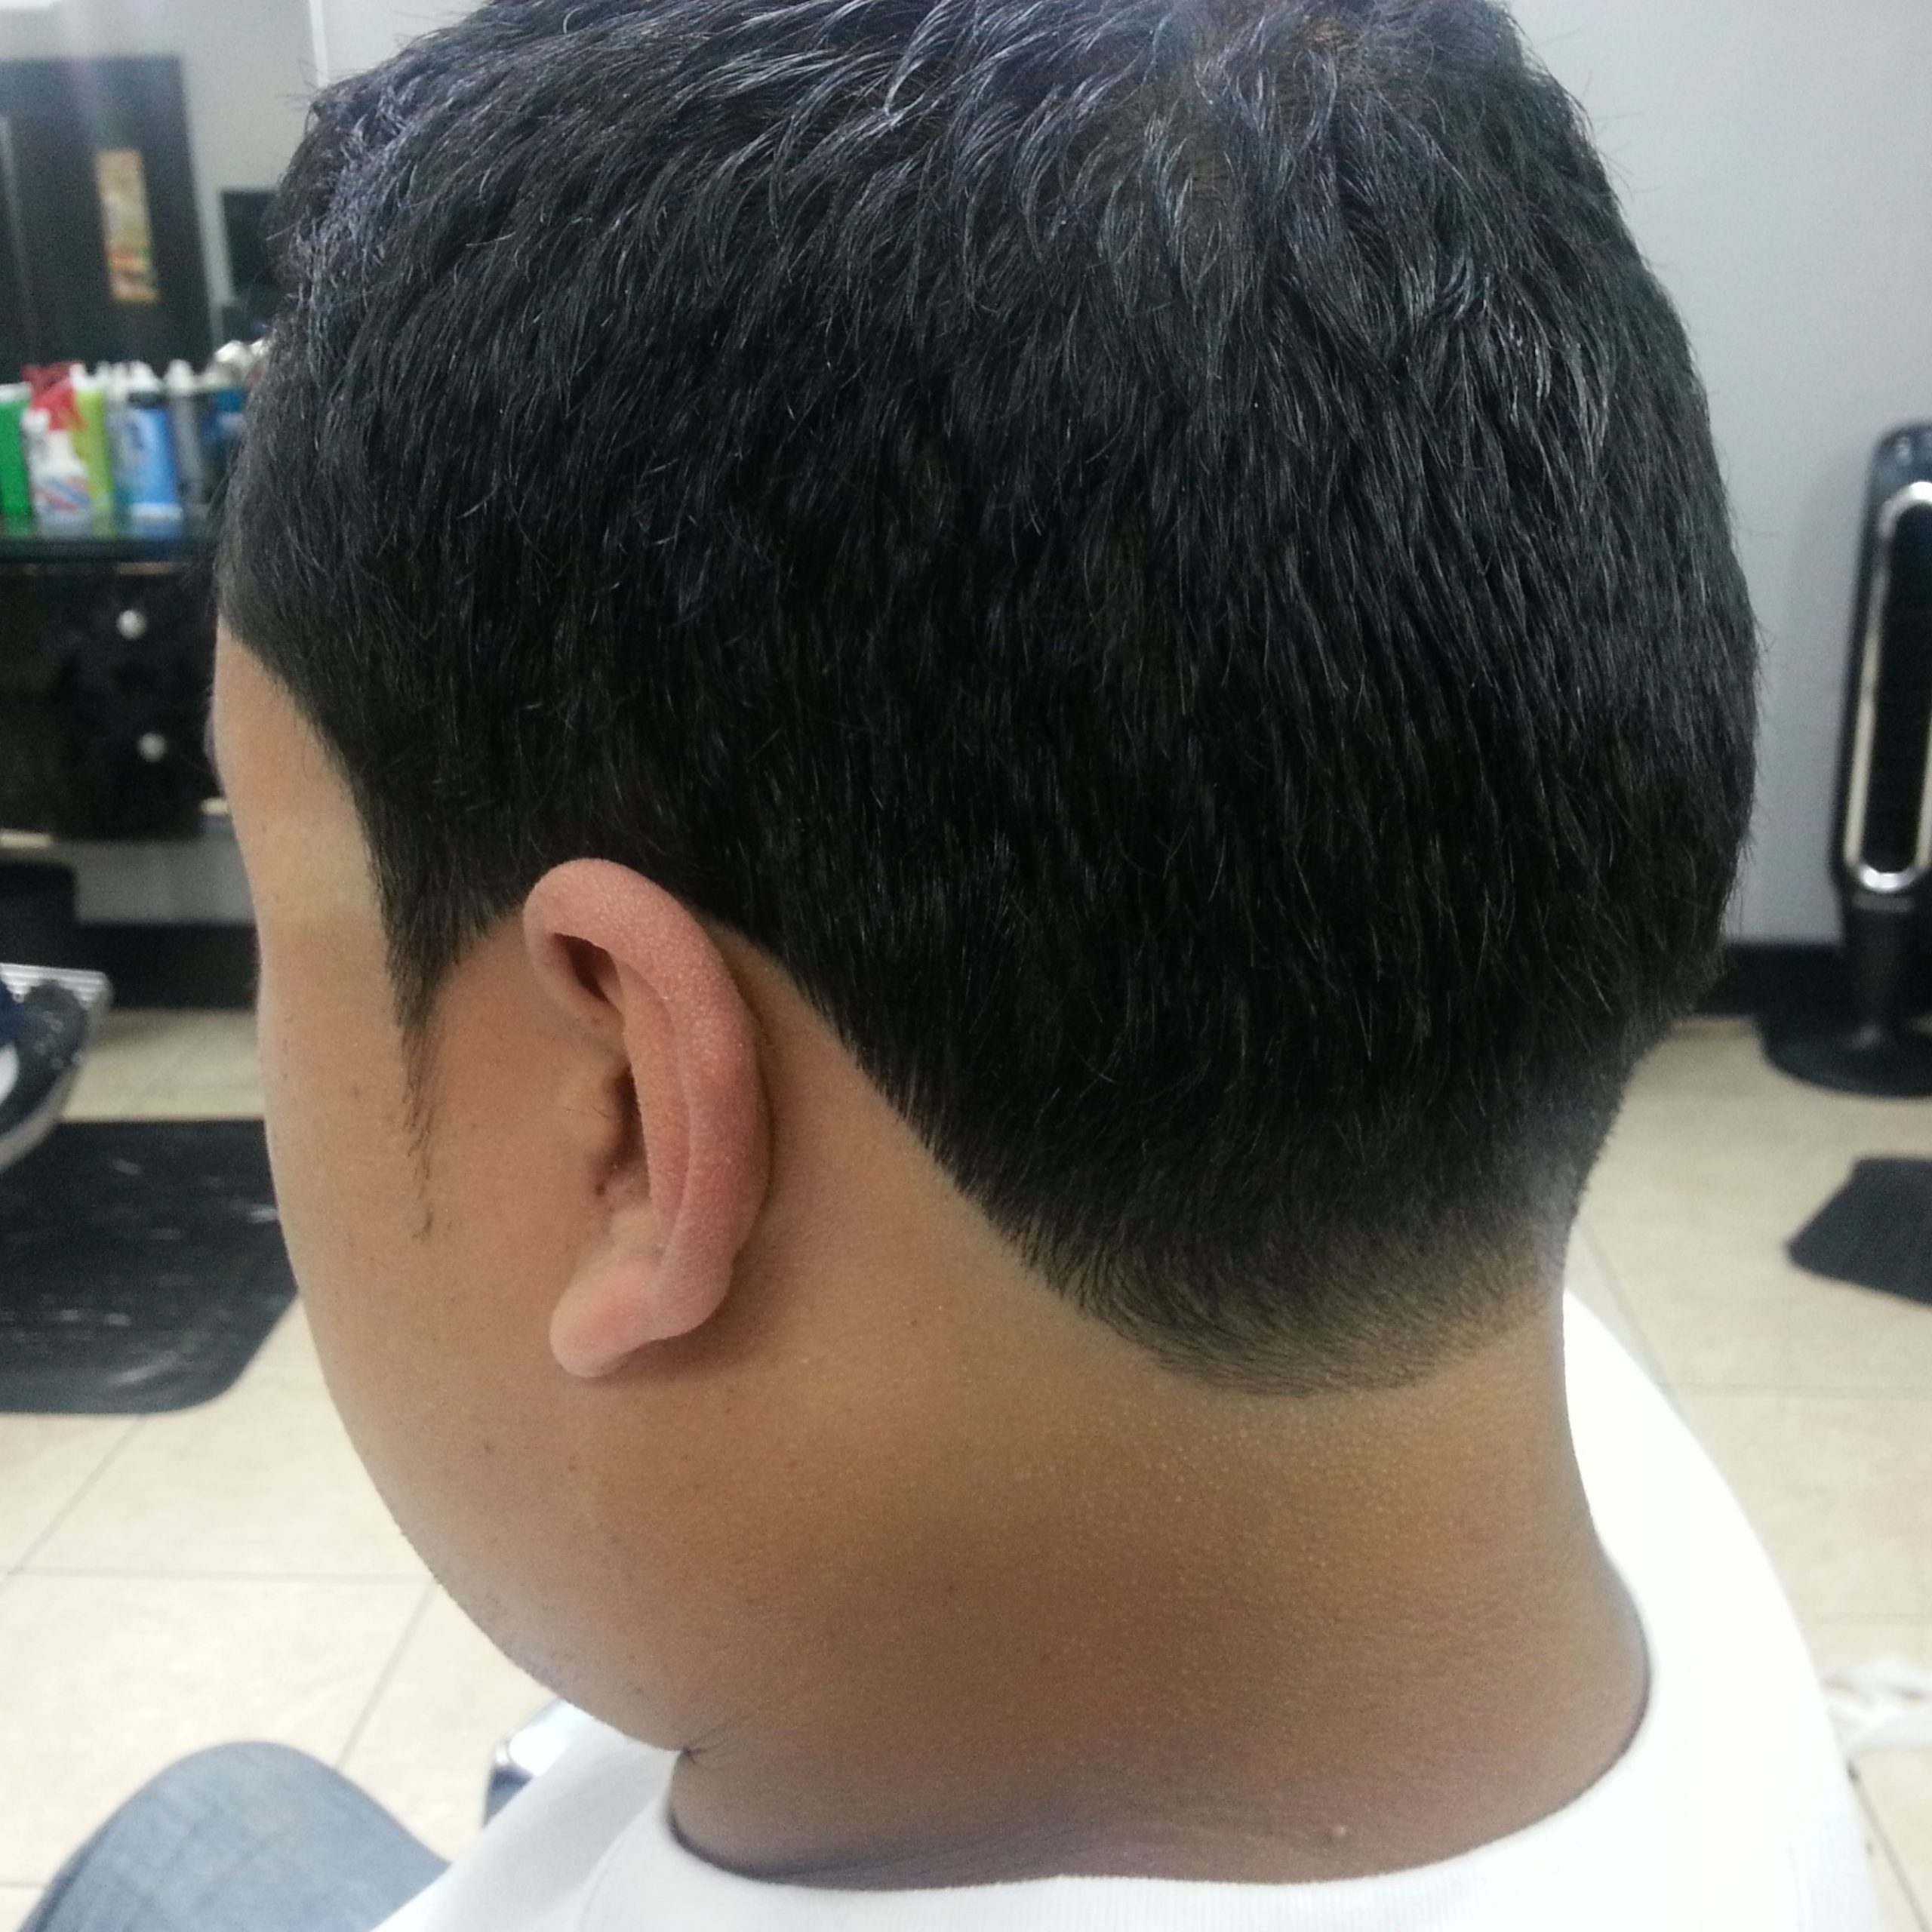 Pin On Natural Short/tapered Hair With Regard To Pixie Haircuts With Tapered Sideburns (View 4 of 20)